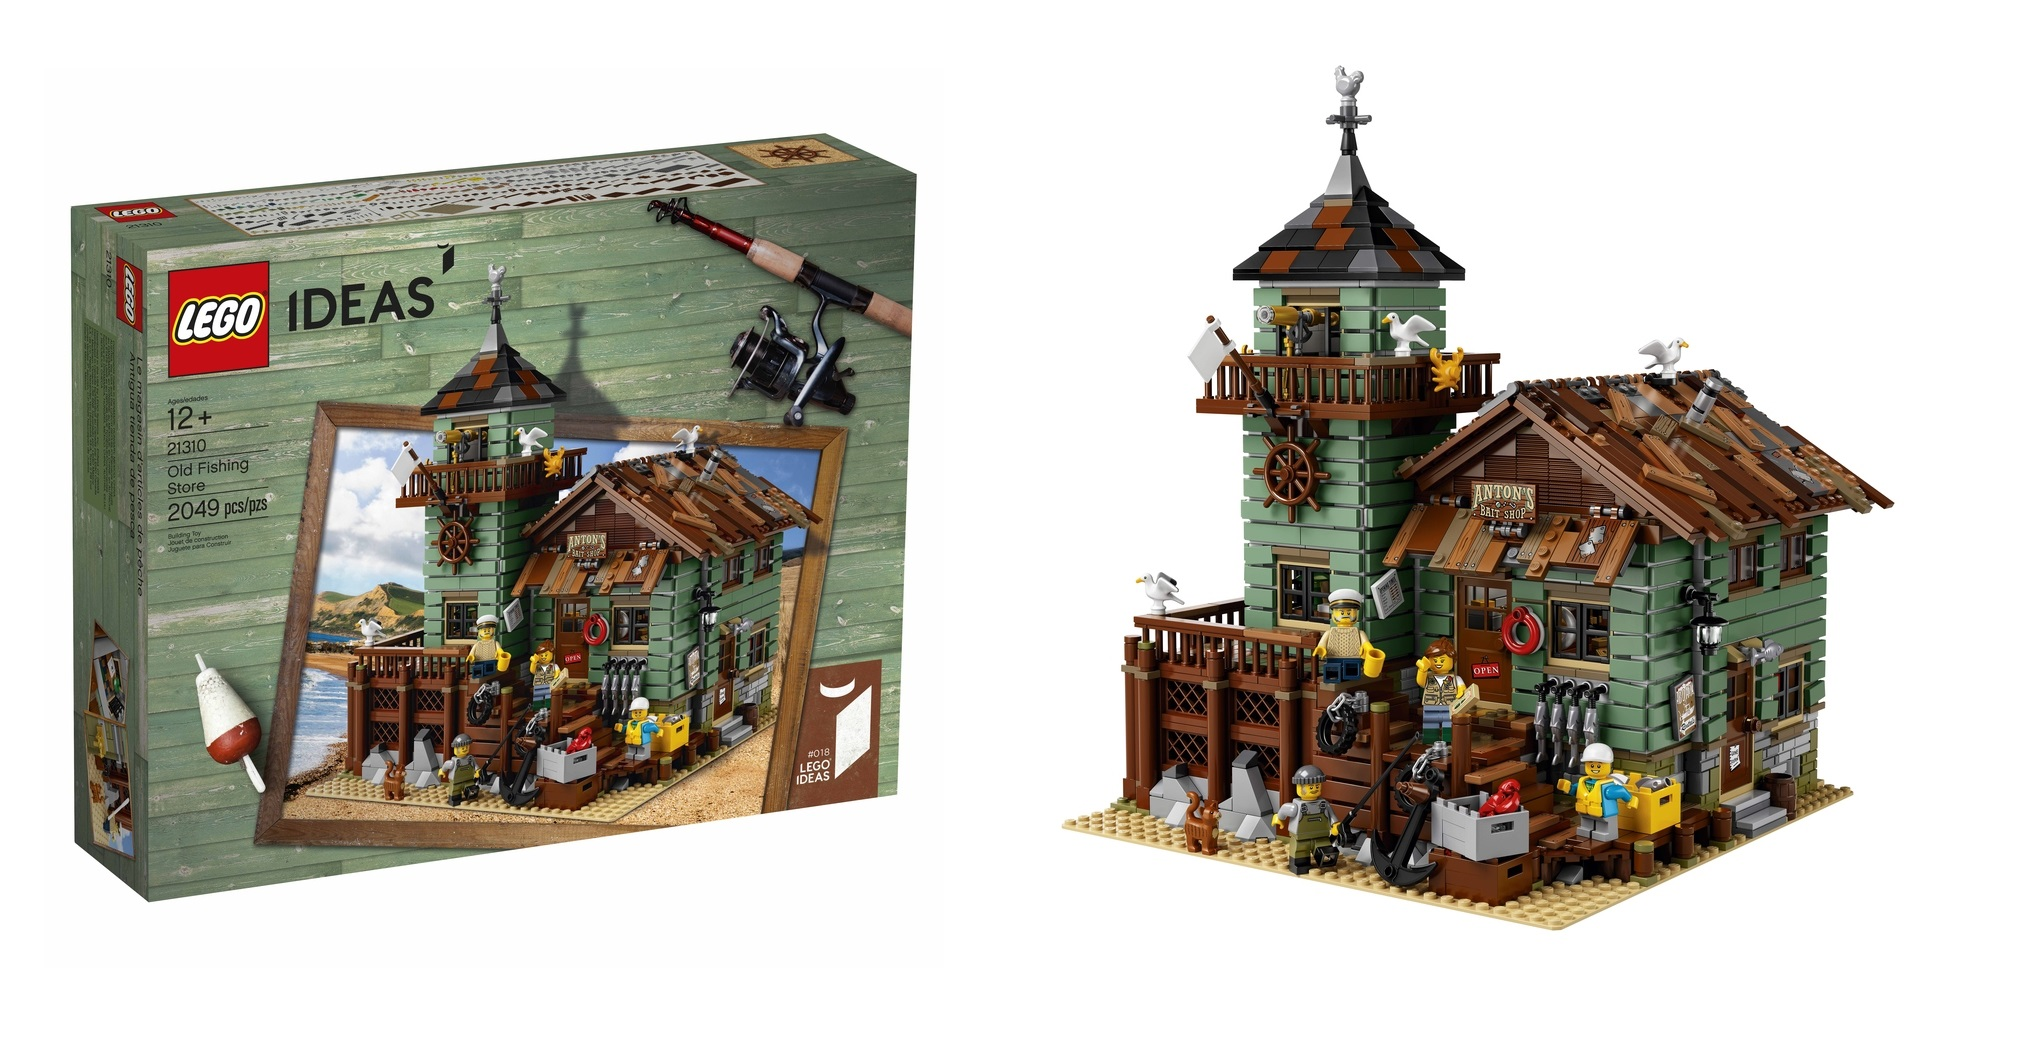 Lego Advent Calendar Ideas : The lego old fishing store combines rustic charm